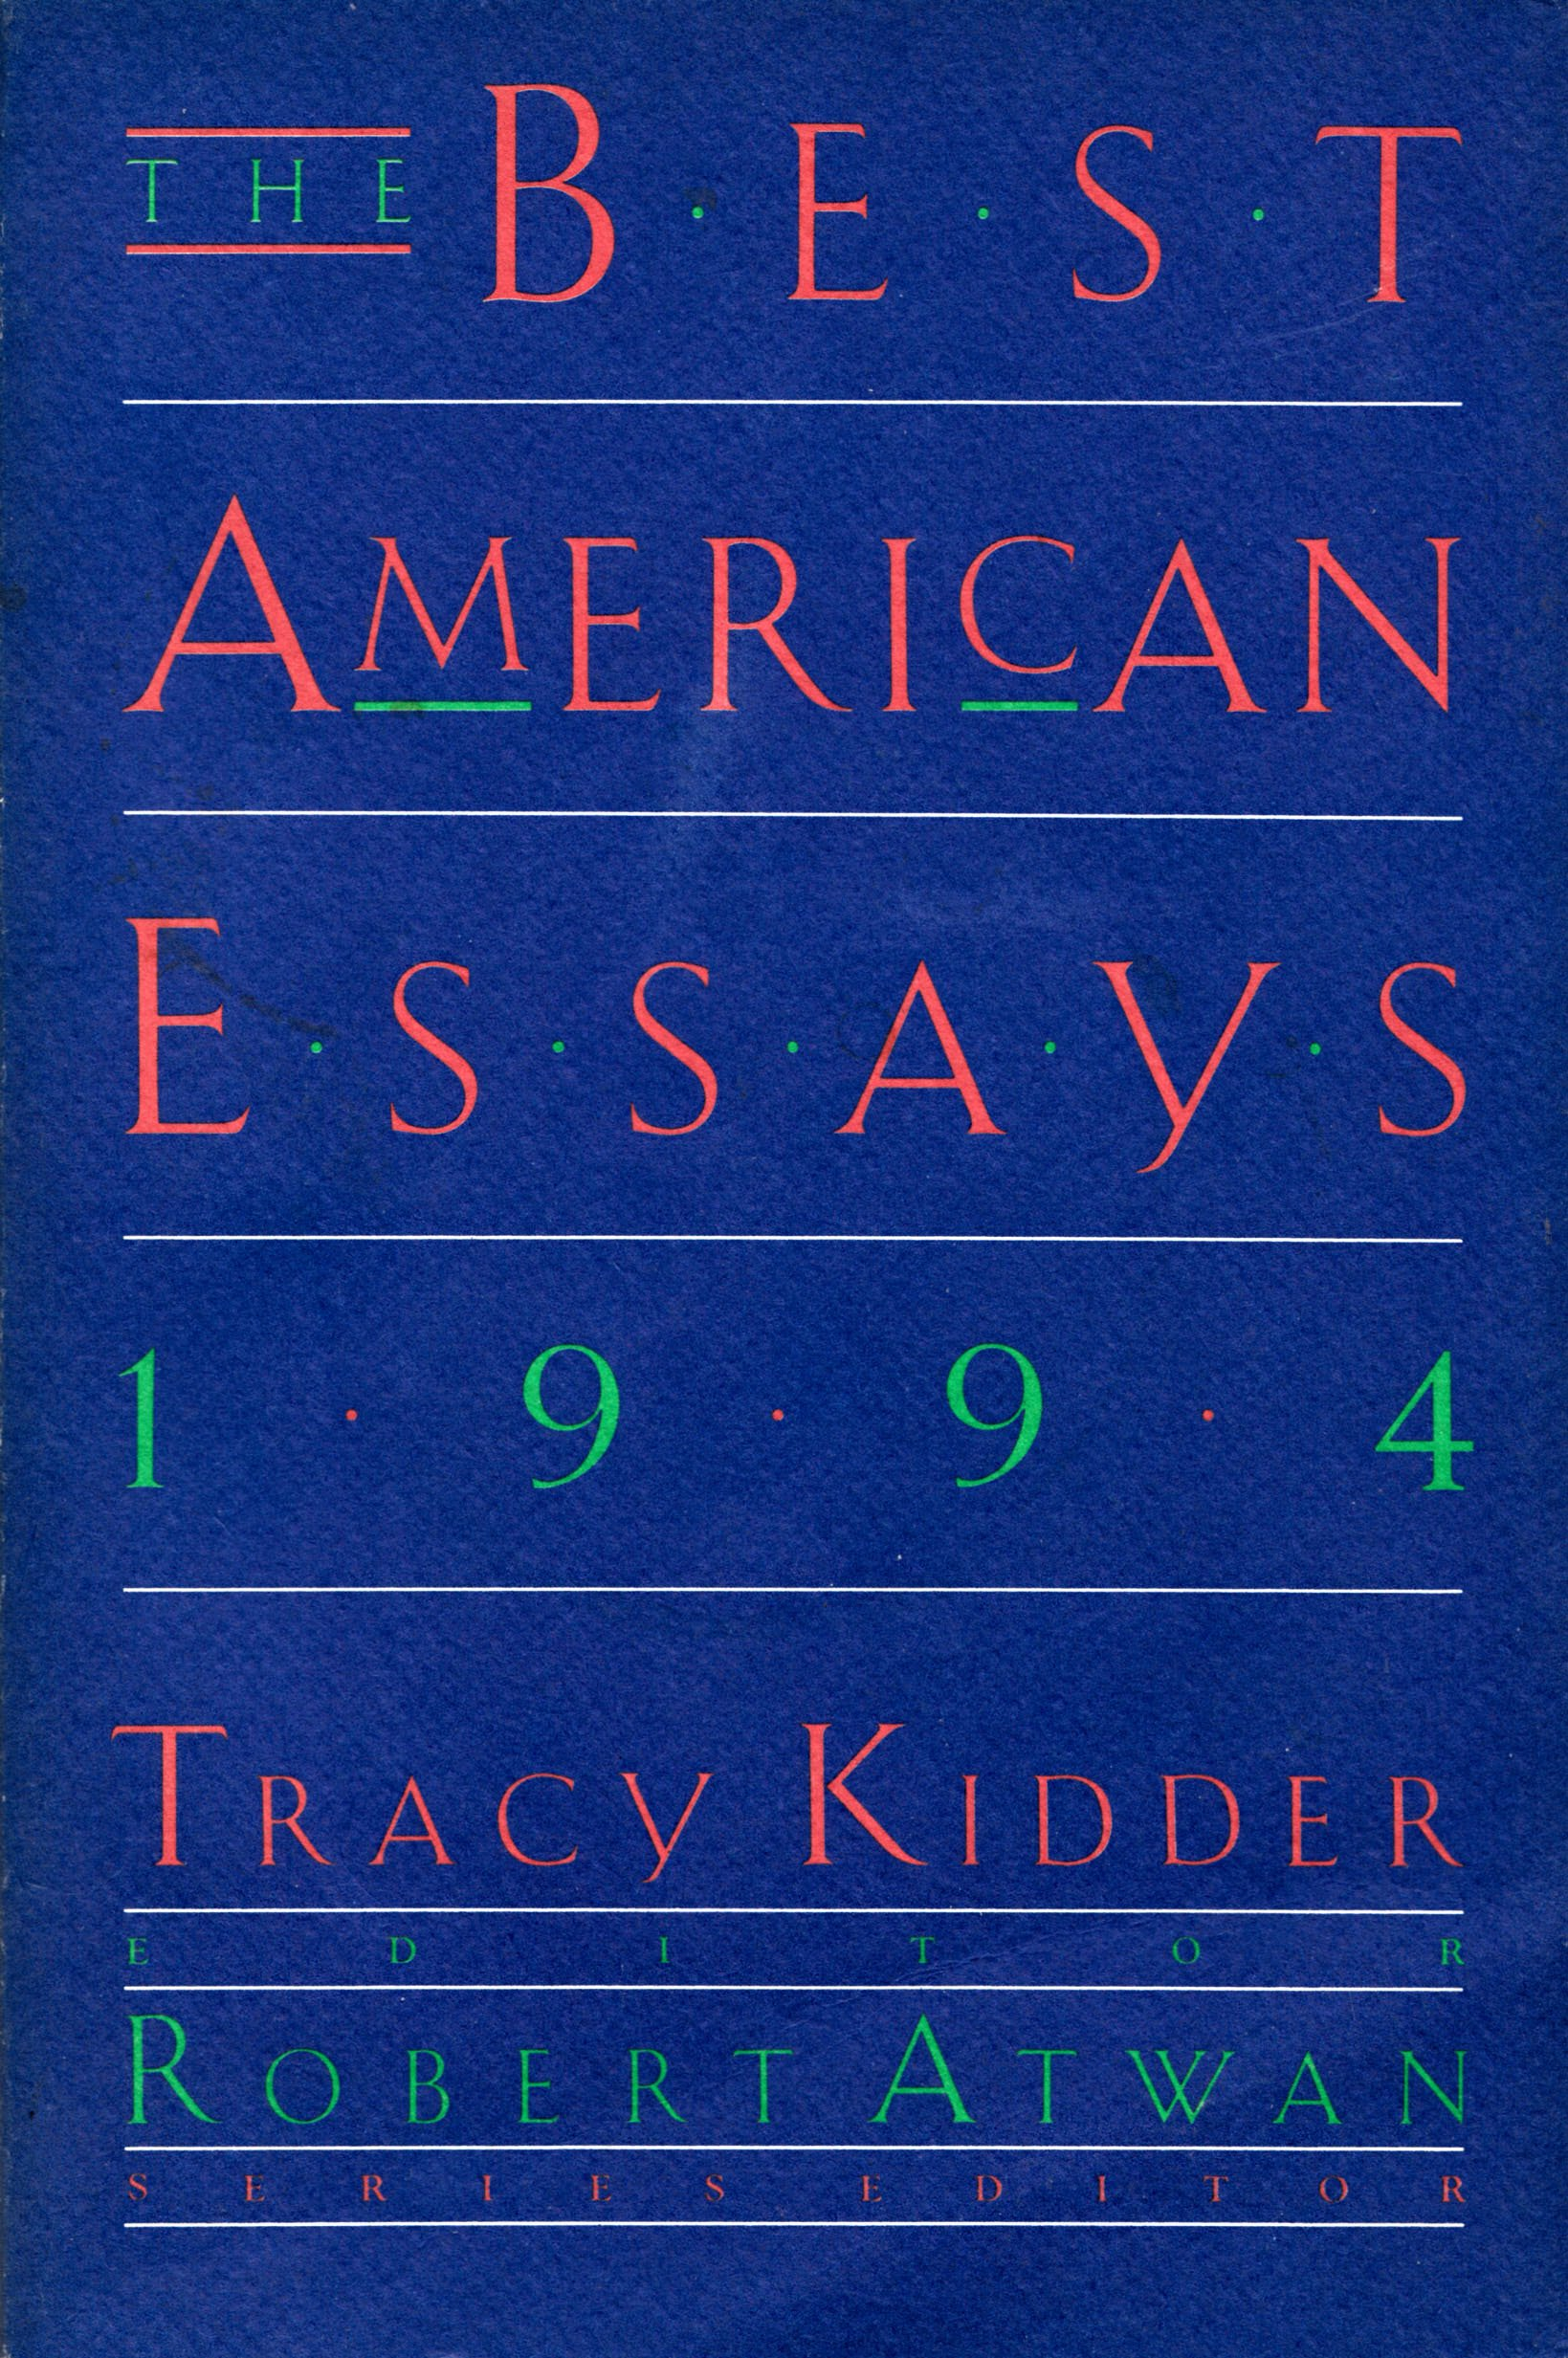 the best american essays 1994 tracy kidder 9780395692530  the best american essays 1994 tracy kidder 9780395692530 com books